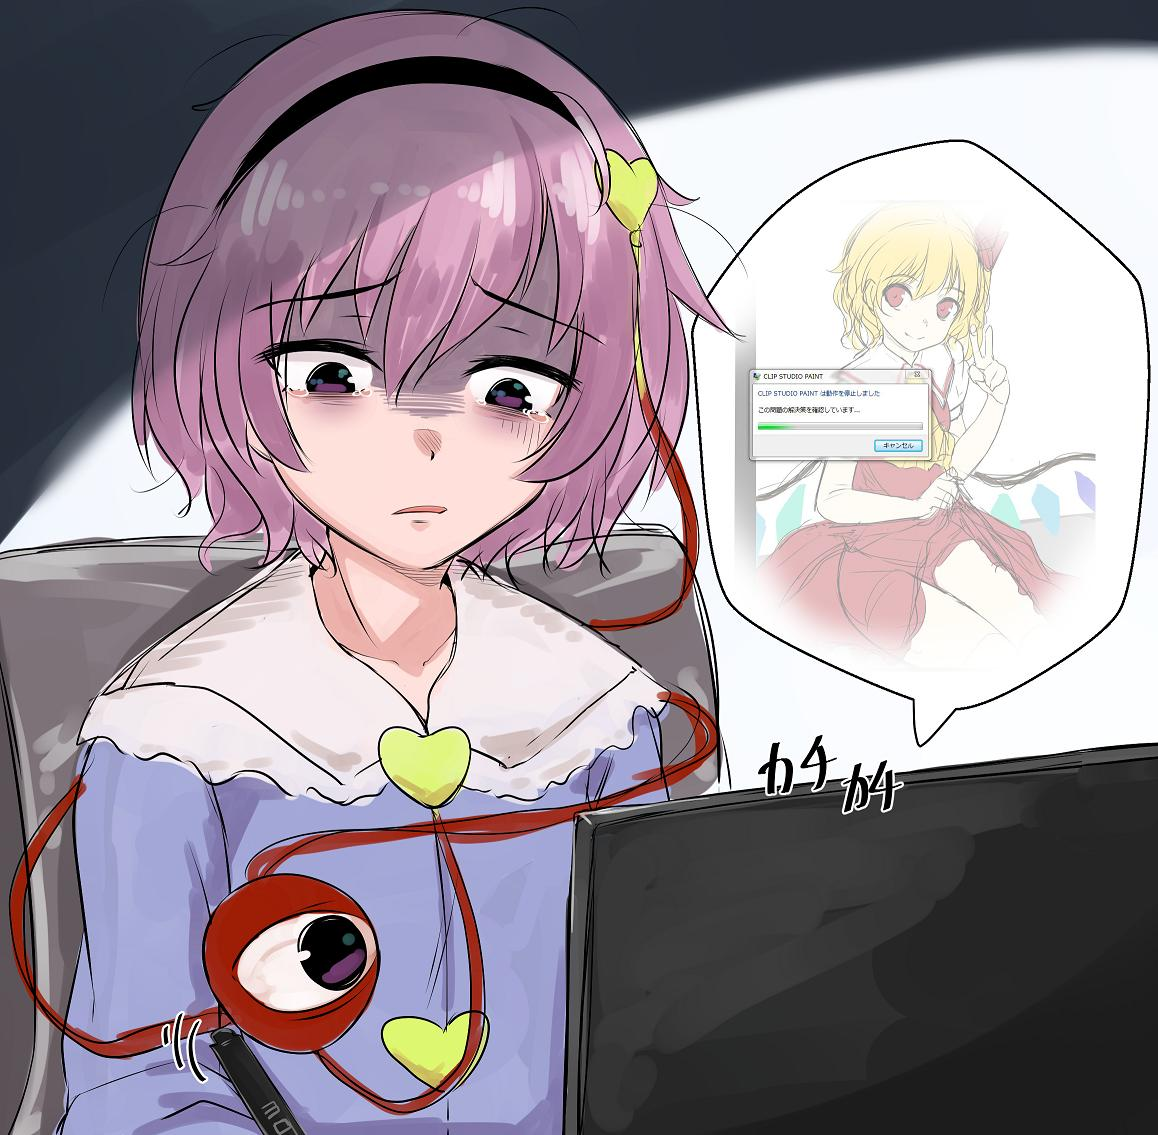 1girl ascot bangs black_background black_hairband blonde_hair blue_shirt clip_studio_paint commentary_request crystal dress error_message eyebrows_visible_through_hair flandre_scarlet frilled_shirt_collar frills hair_between_eyes hair_ornament hairband hand_up heart heart_hair_ornament komeiji_satori monitor no_hat no_headwear paburisiyasu parted_lips puffy_short_sleeves puffy_sleeves purple_hair red_dress red_eyes shirt short_hair short_sleeves solo stylus tears thighs third_eye touhou translation_request two-tone_background upper_body v violet_eyes white_background white_shirt wings yellow_neckwear